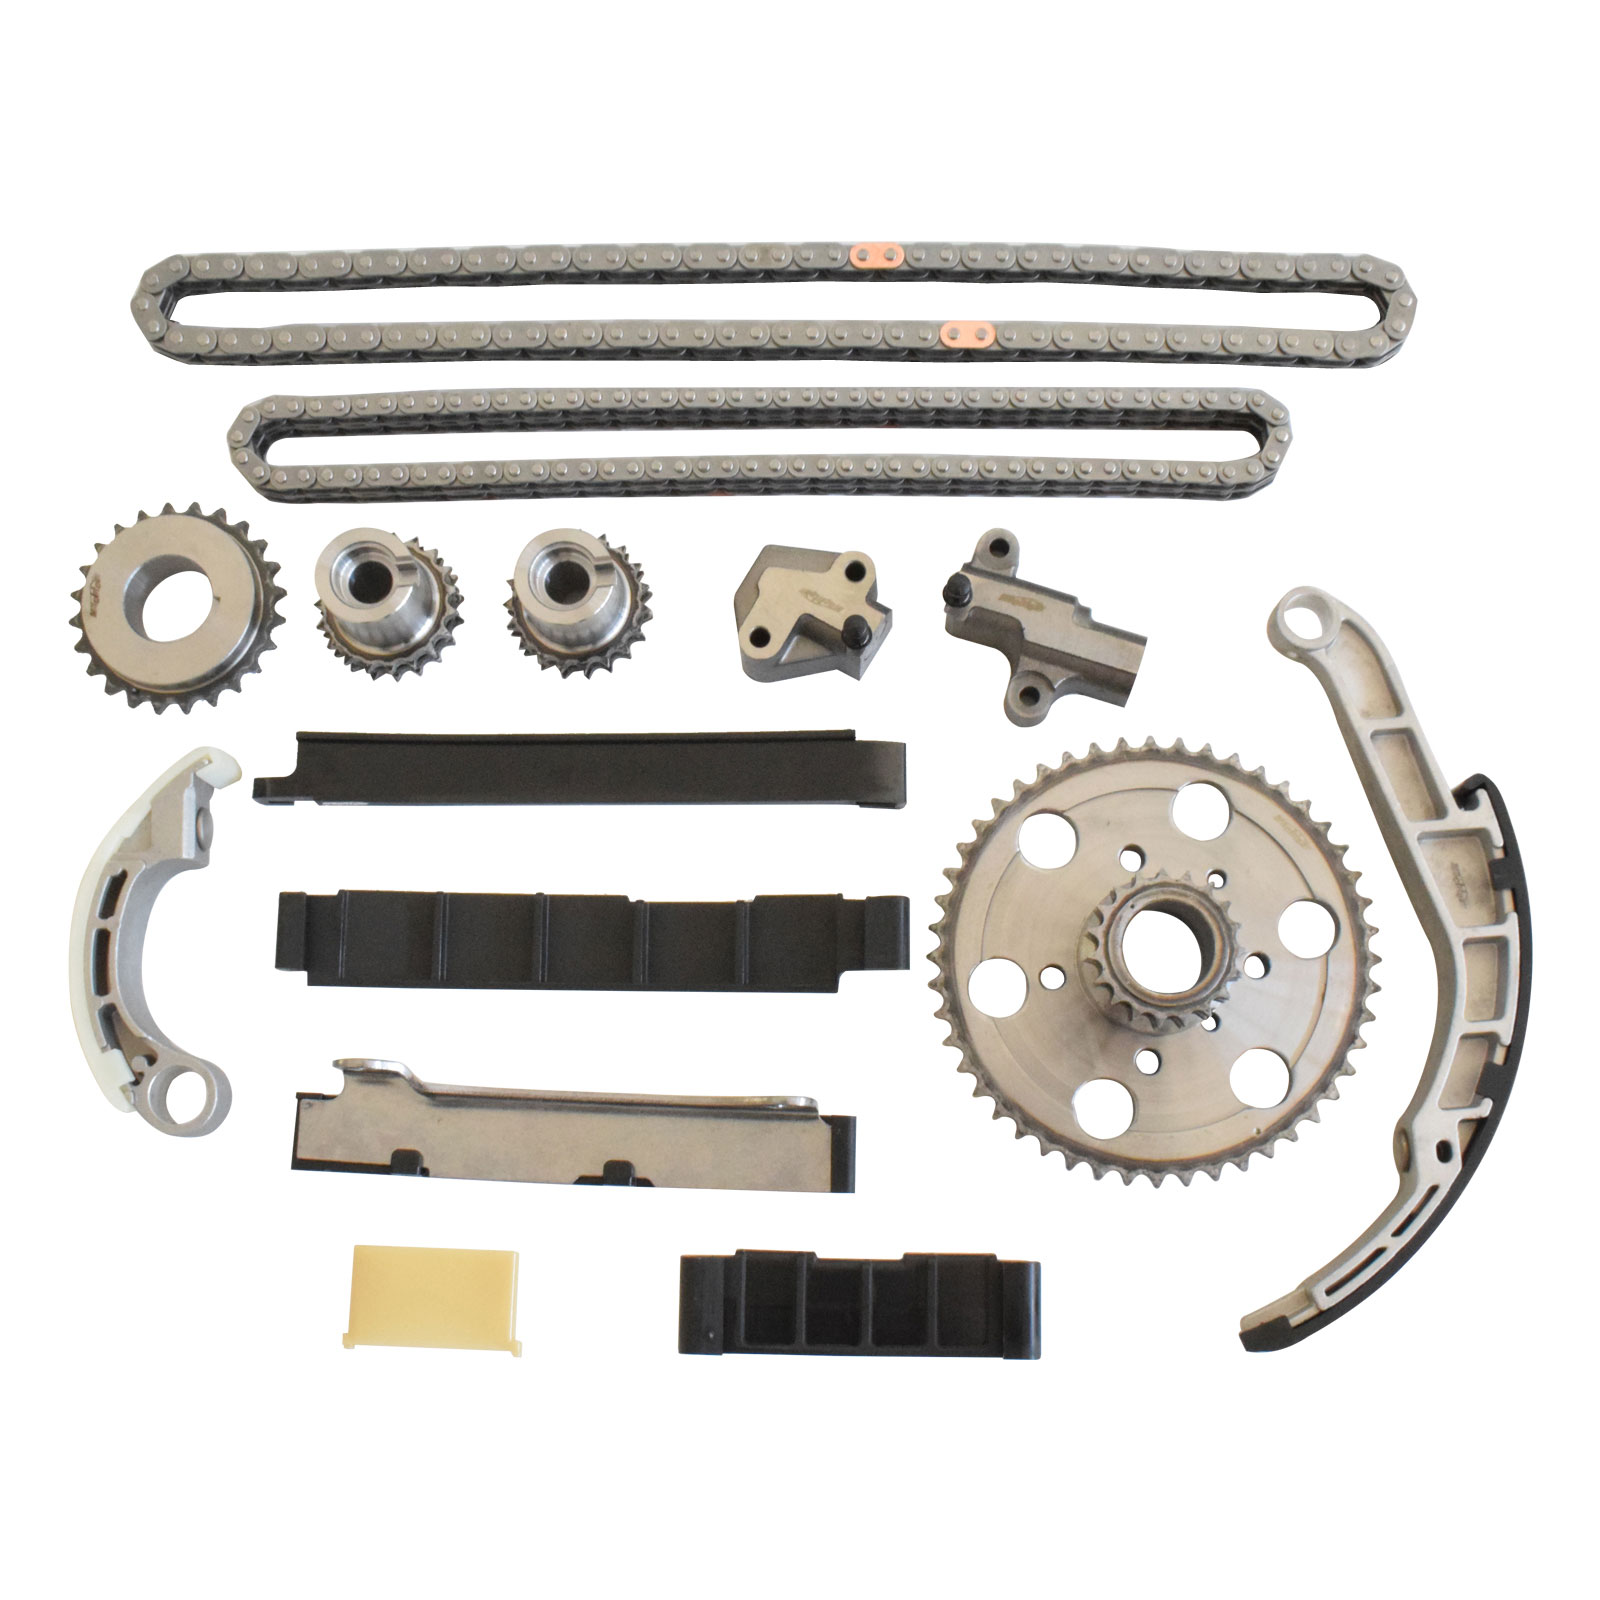 Timing Chain Kits- Car Parts by Machter Autoparts